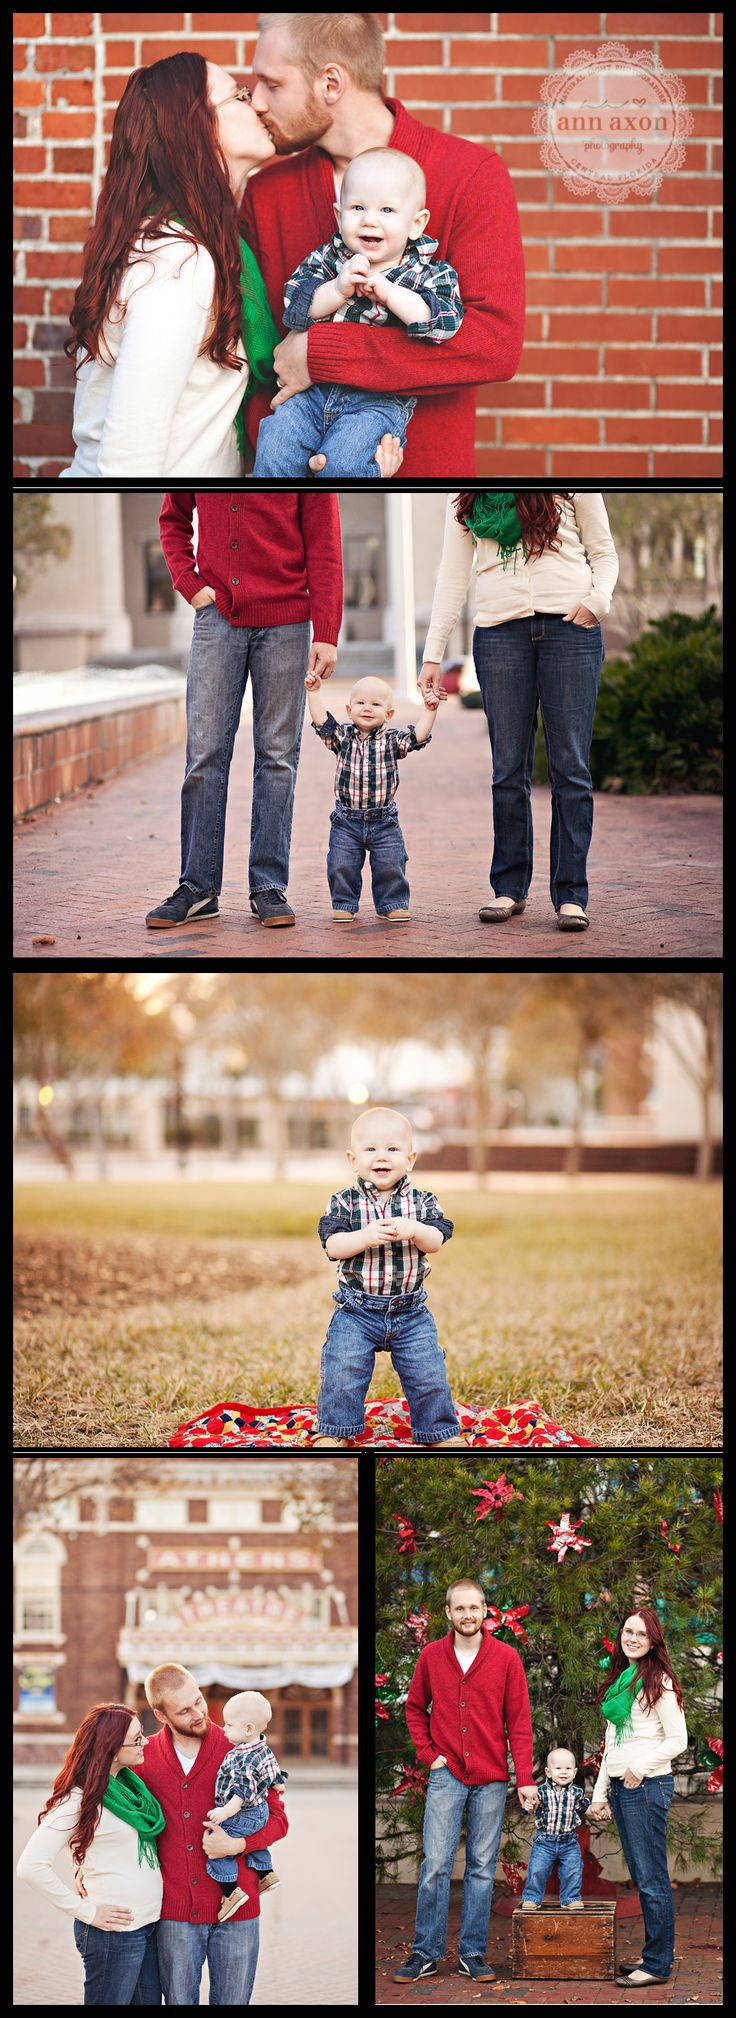 280 Best Family Photography Images On Pinterest Family